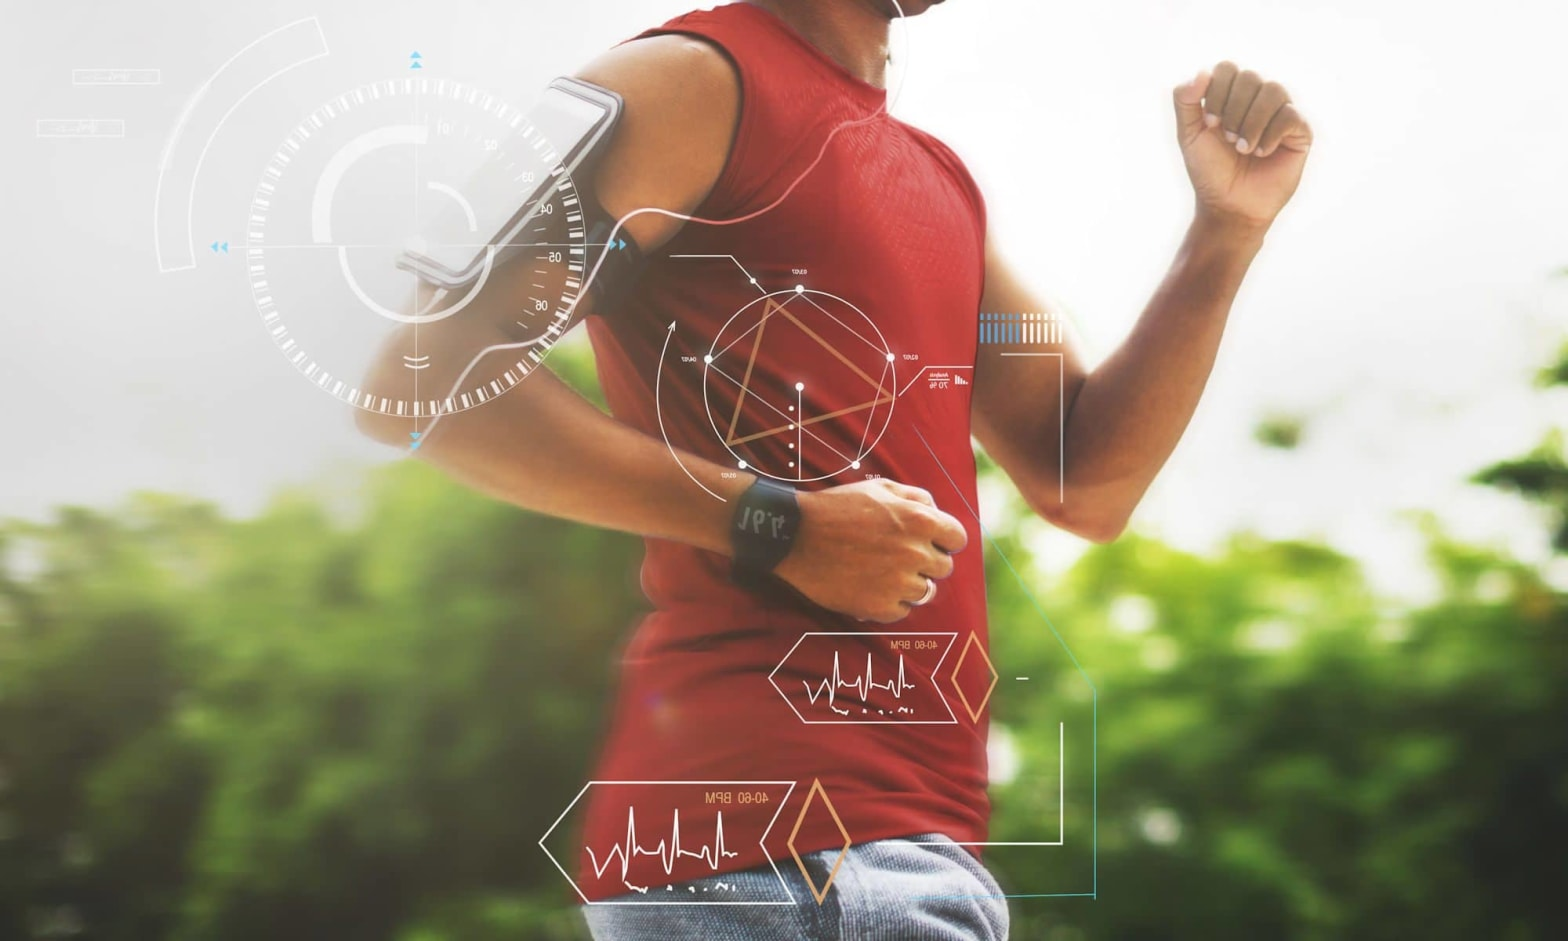 6 ways how Sensors are transforming sports